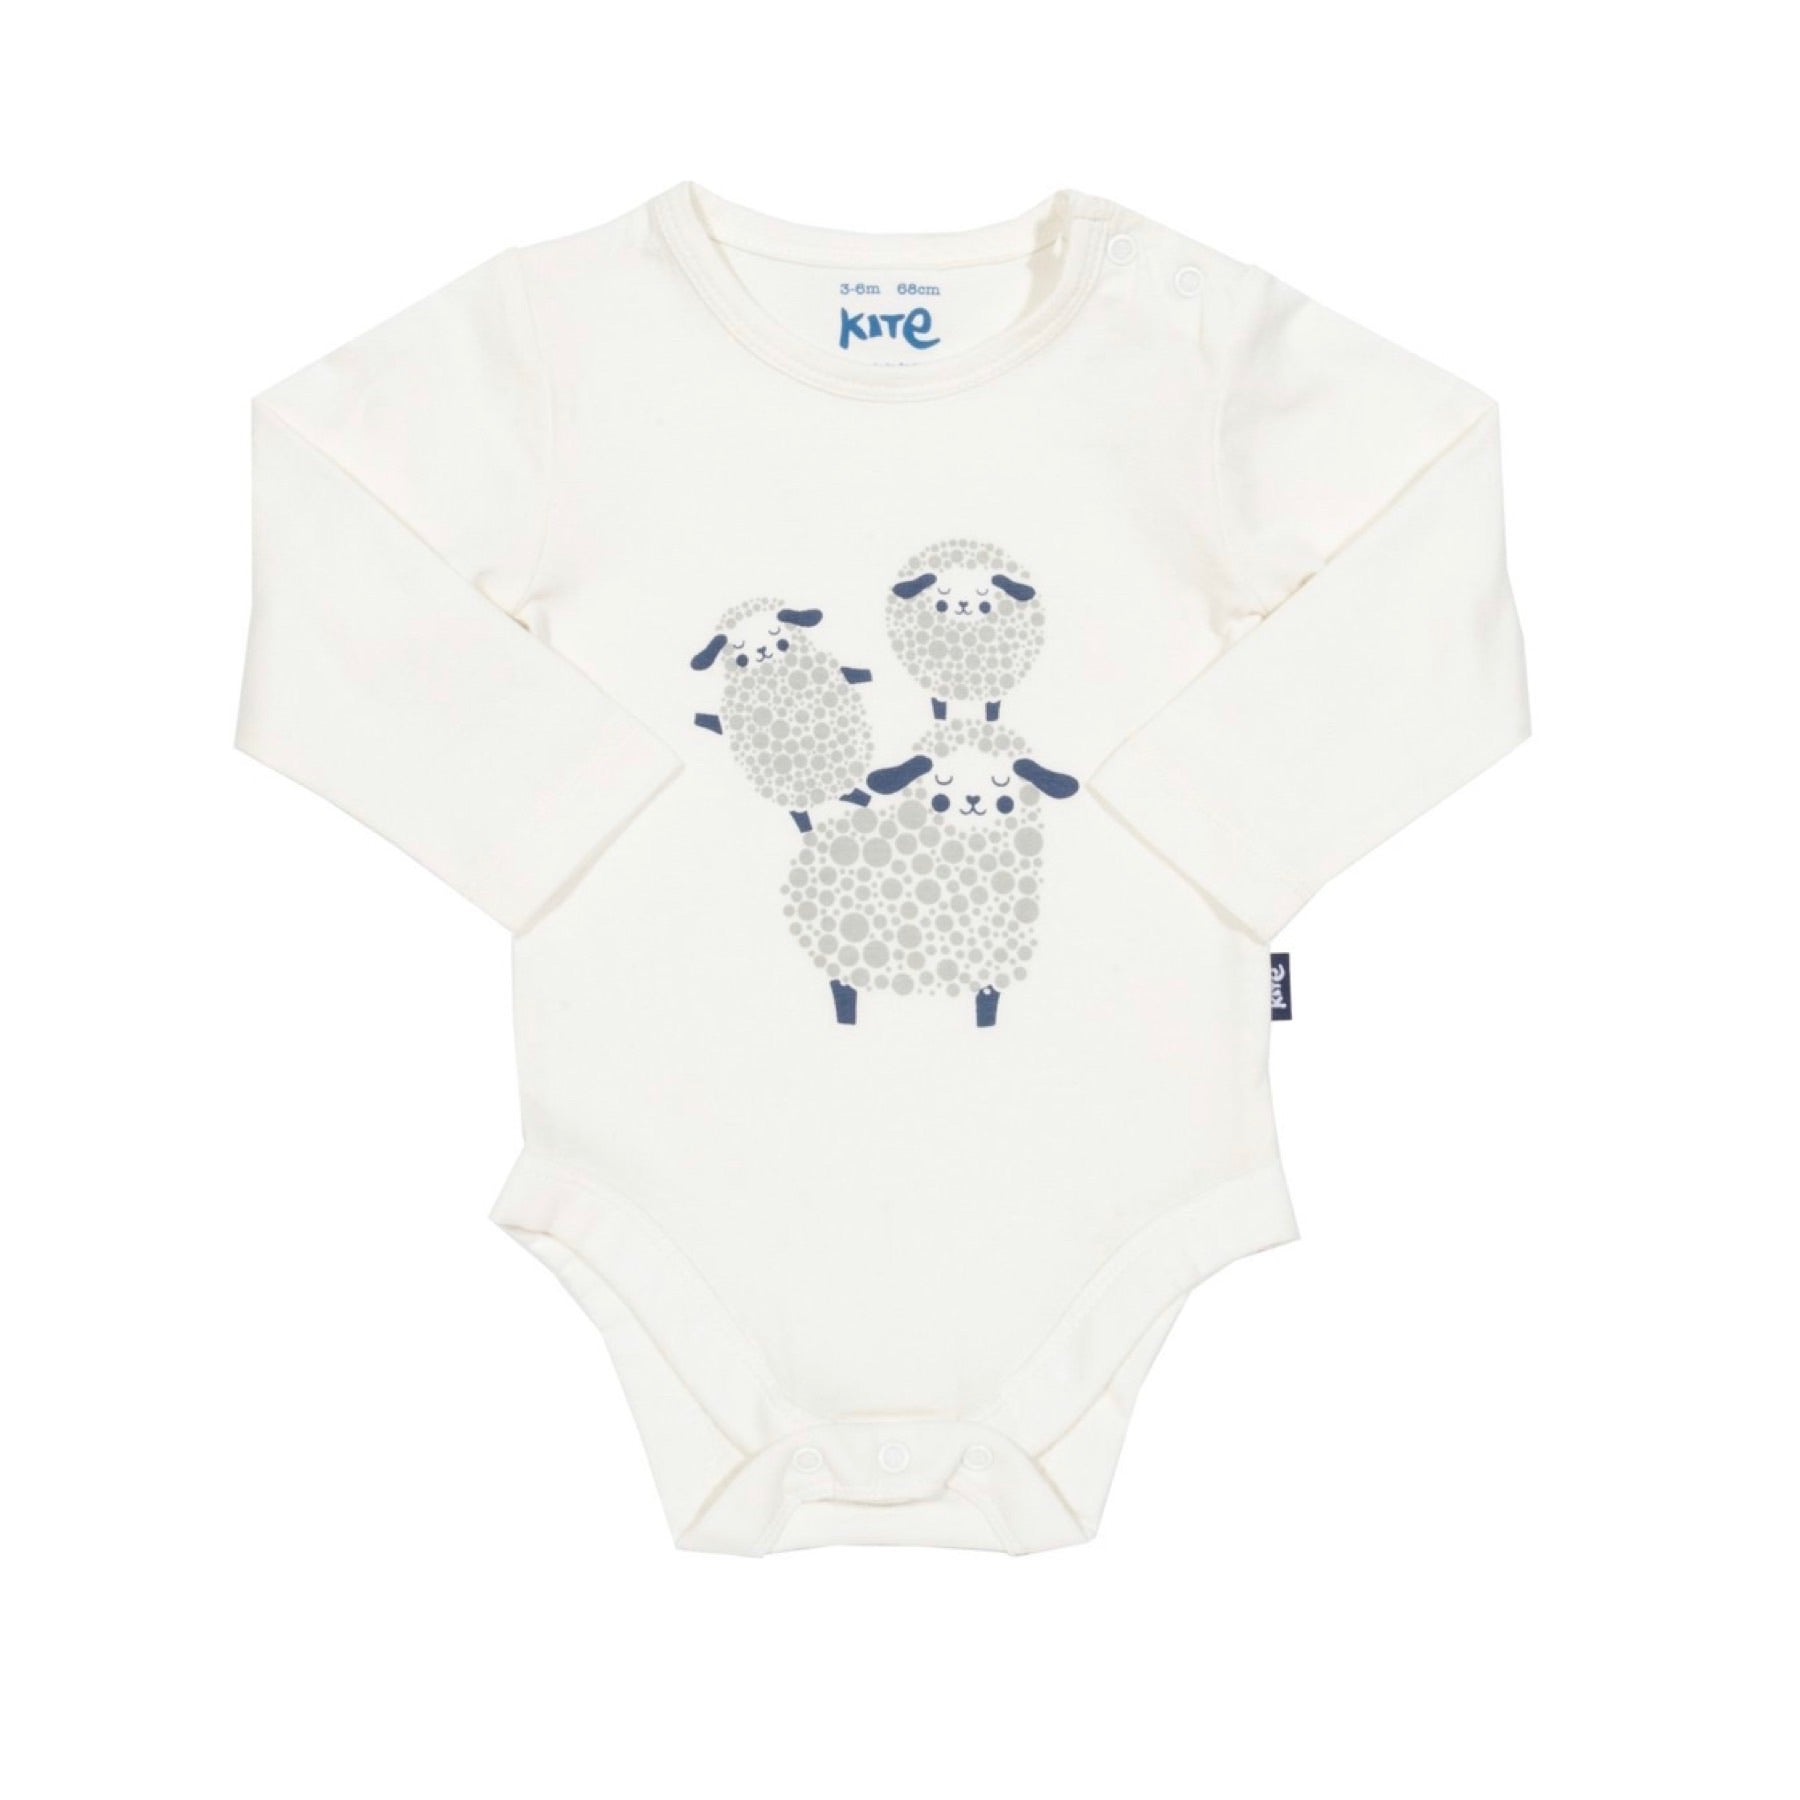 Certified organic cotton sheep dreams bodysuit by Kite